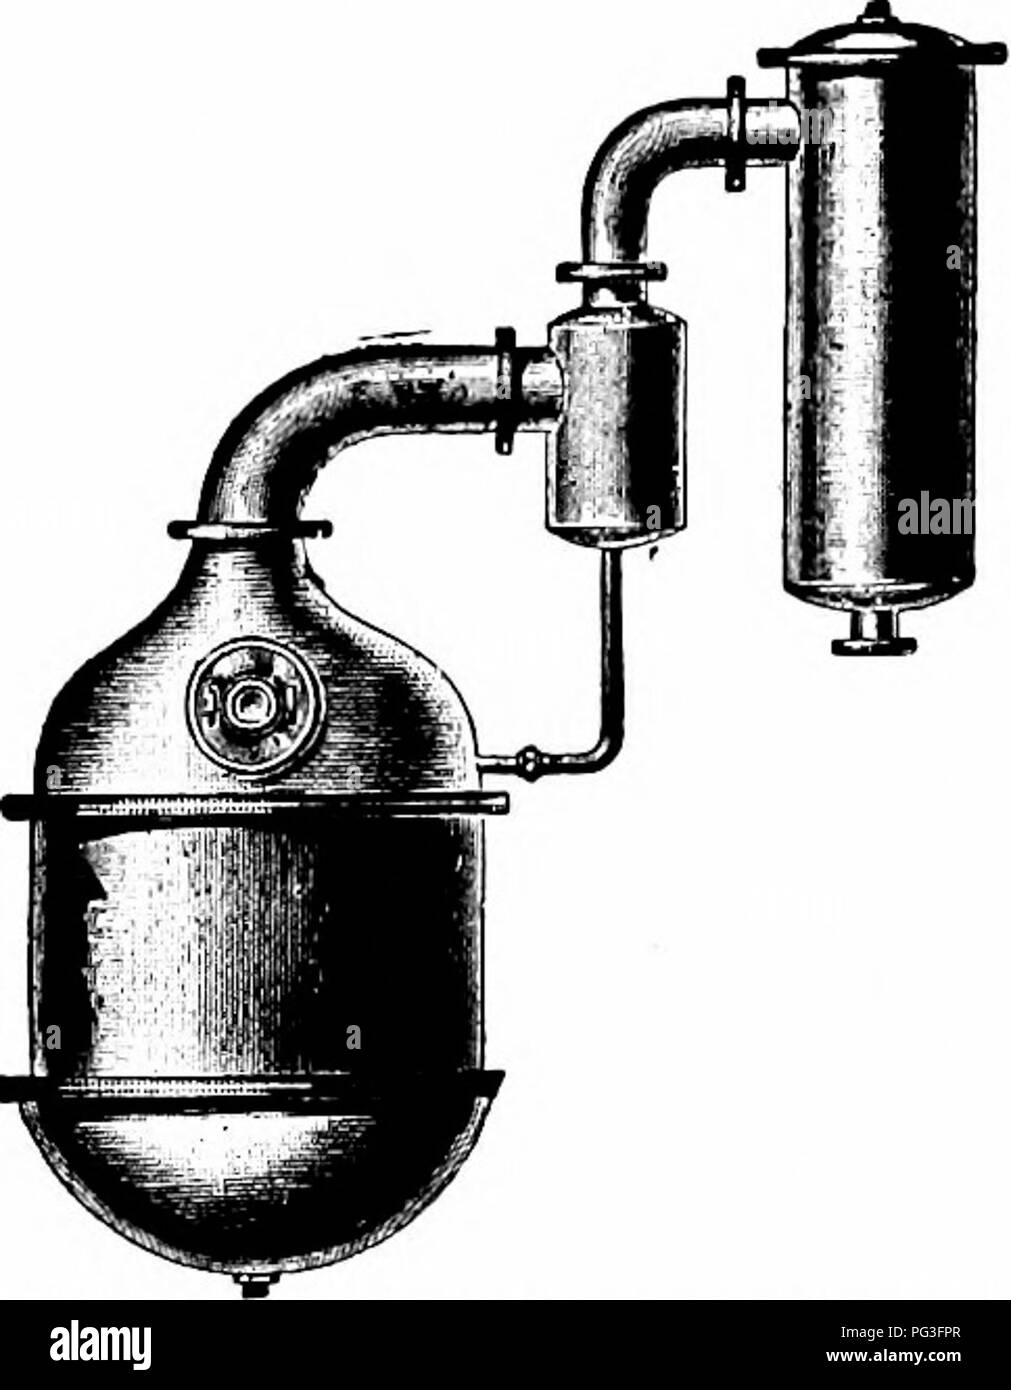 . Condensed milk and milk powder, prepared for the use of milk condenseries, dairy students and pure food departments. Condensed milk. 74 SwEF/ritNKD Condensed Milk—Condensing. Fig. 23. Vacuum pan with mill< trap Courtesy of Arthur Harris & Co If the pipe through which the milk enters the pan is turned down and its end is carried to near the bottom of the pan, so as to avoid the formation of excessive milk spray, if the pan is operated carefully and if the milk is kept at a reasonably low level, there is very little danger of milk being carried over into the condenser in quantities suff - Stock Image